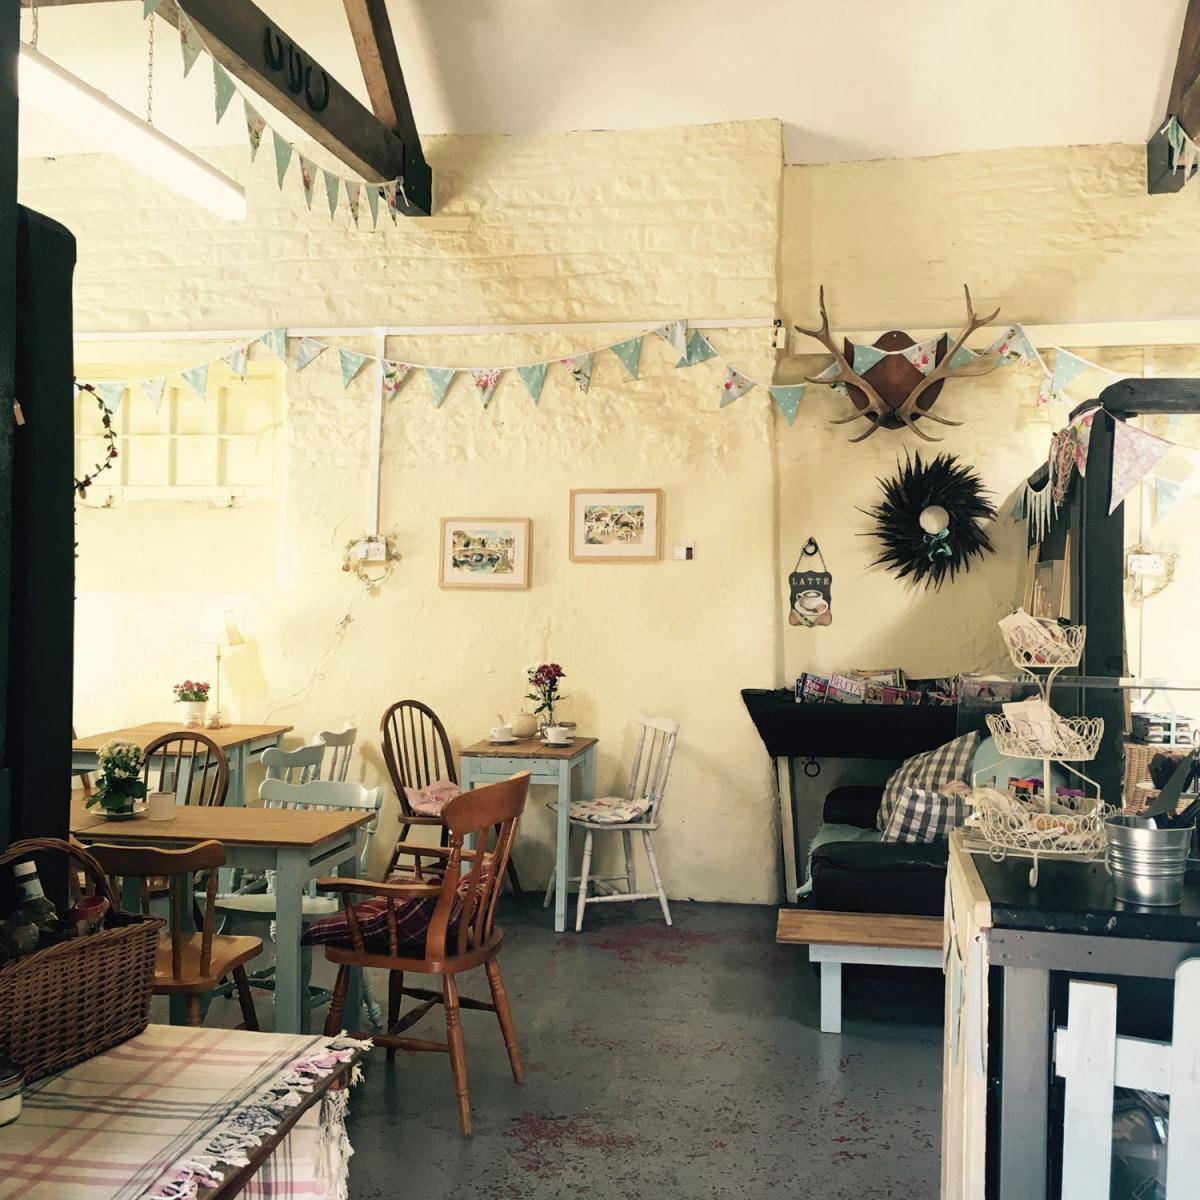 Images from Old Stables Coffee Shop